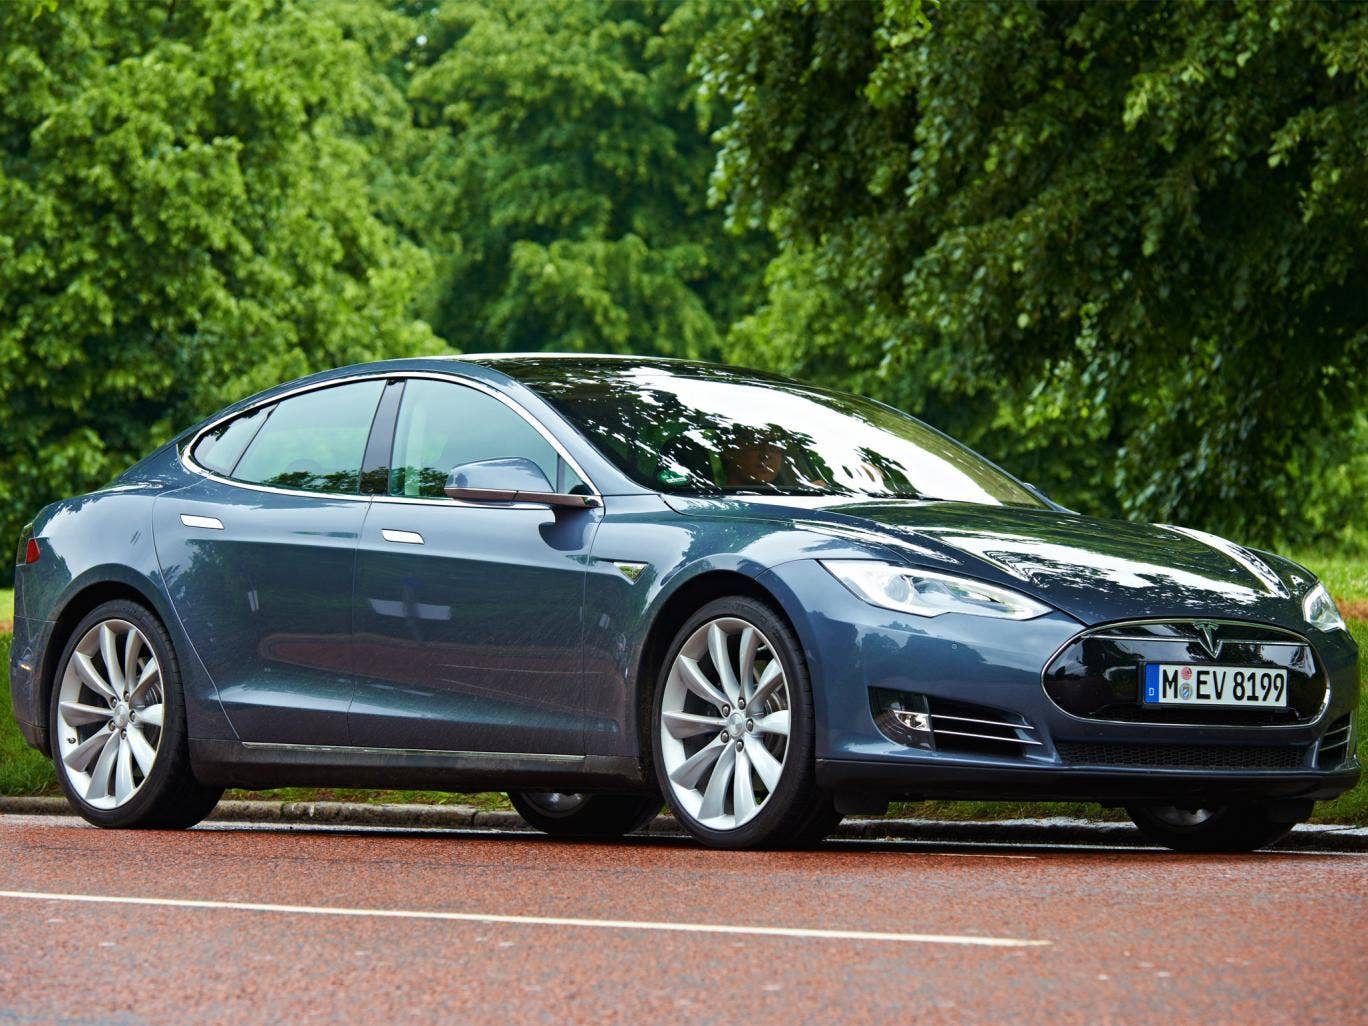 Truly revolutionary: the Tesla Model S